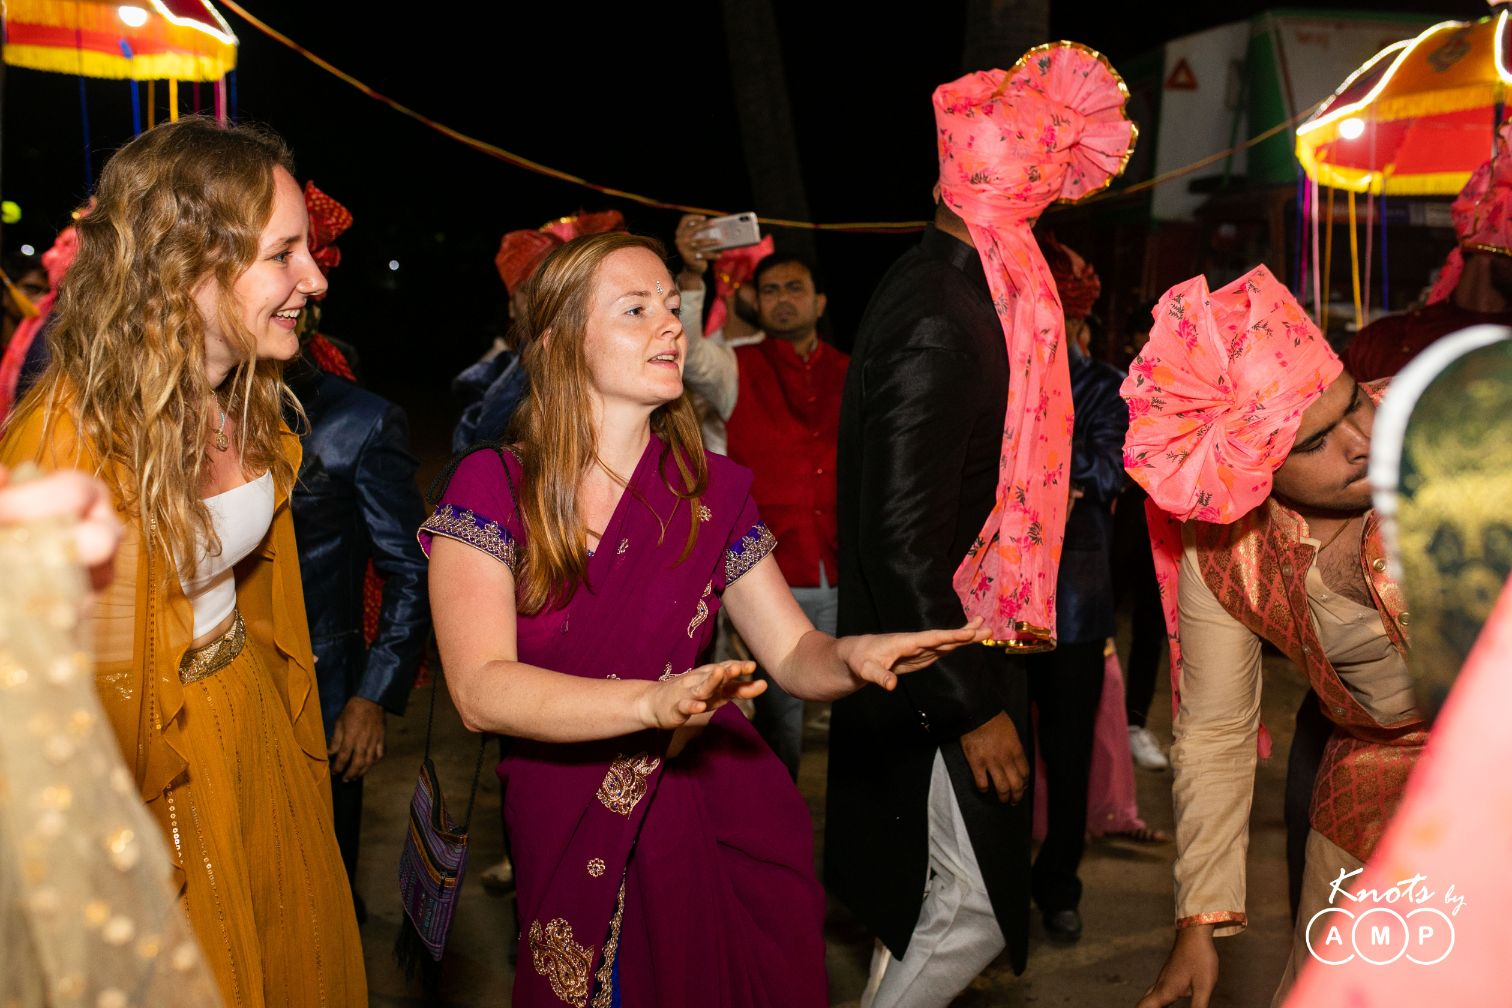 Foreign Guests in Indian Attire Dancing in Baraat